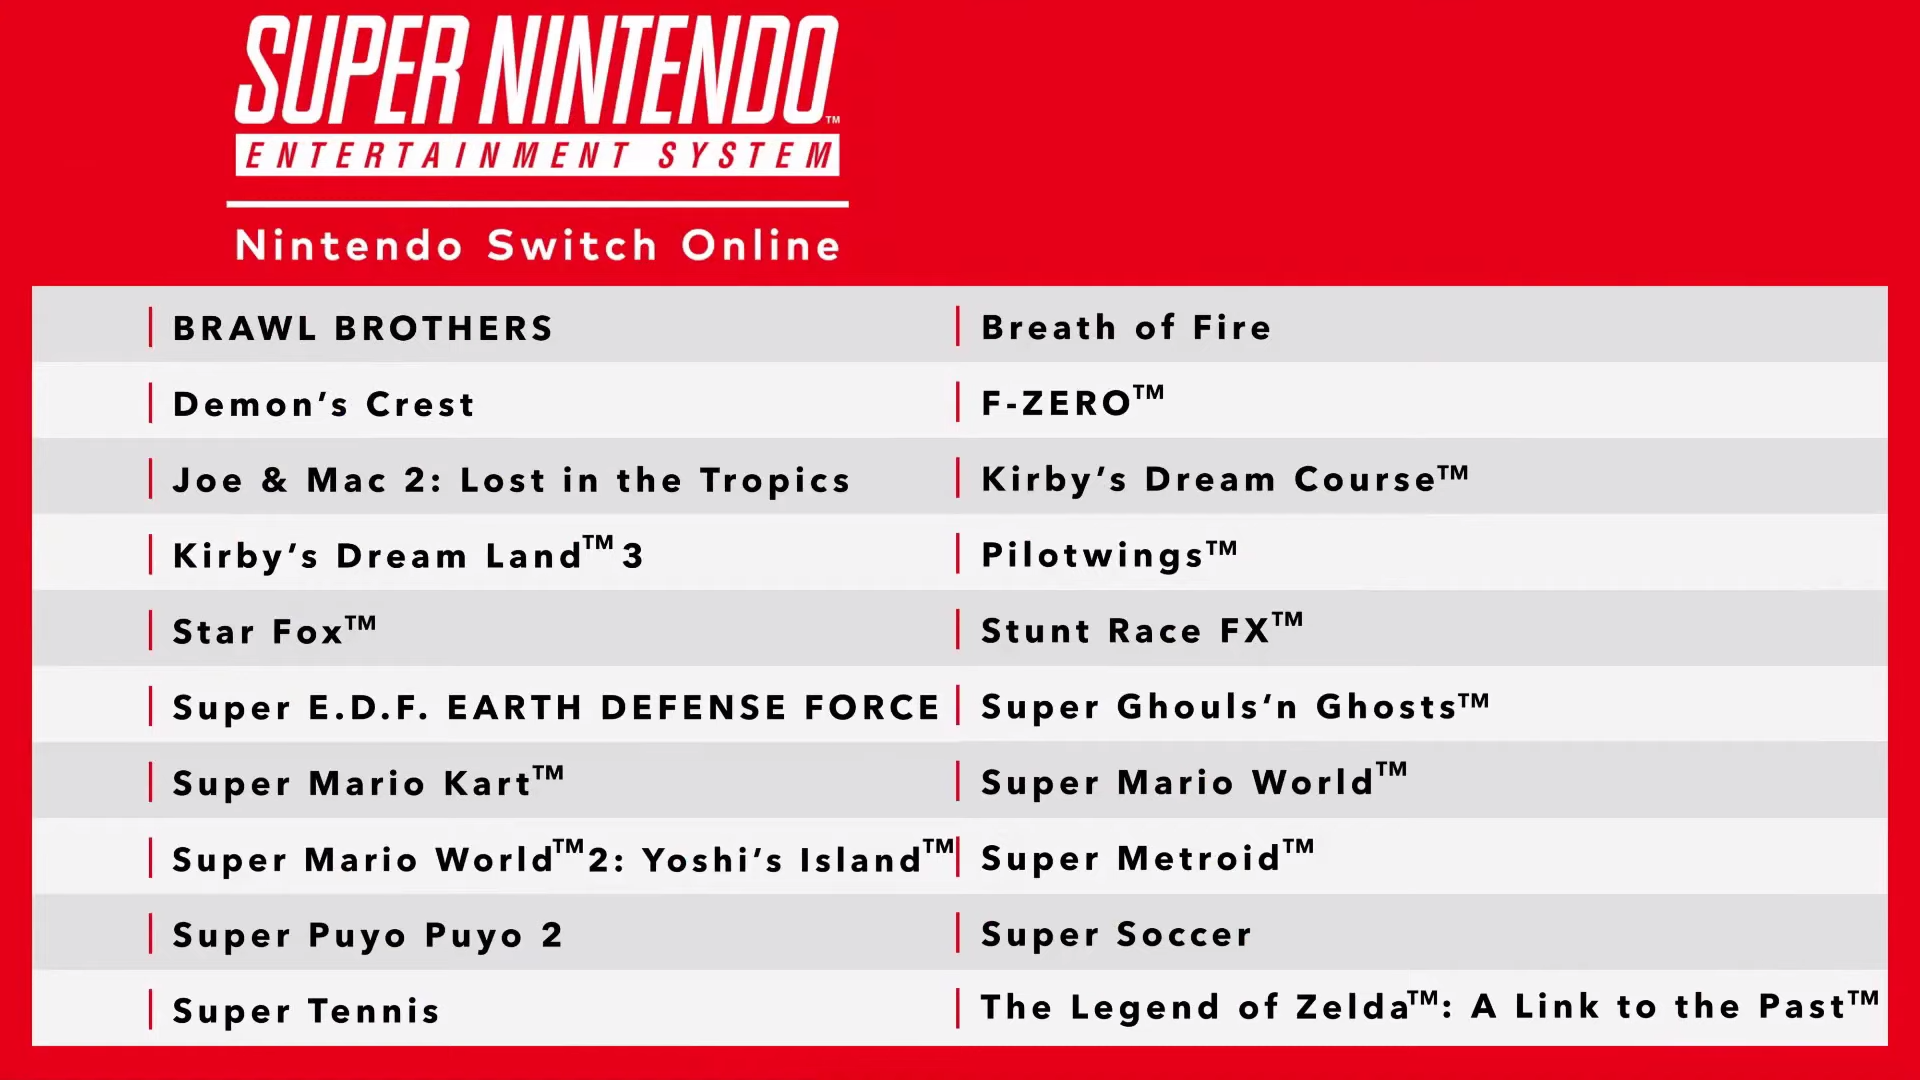 nintendo switch online snes games list